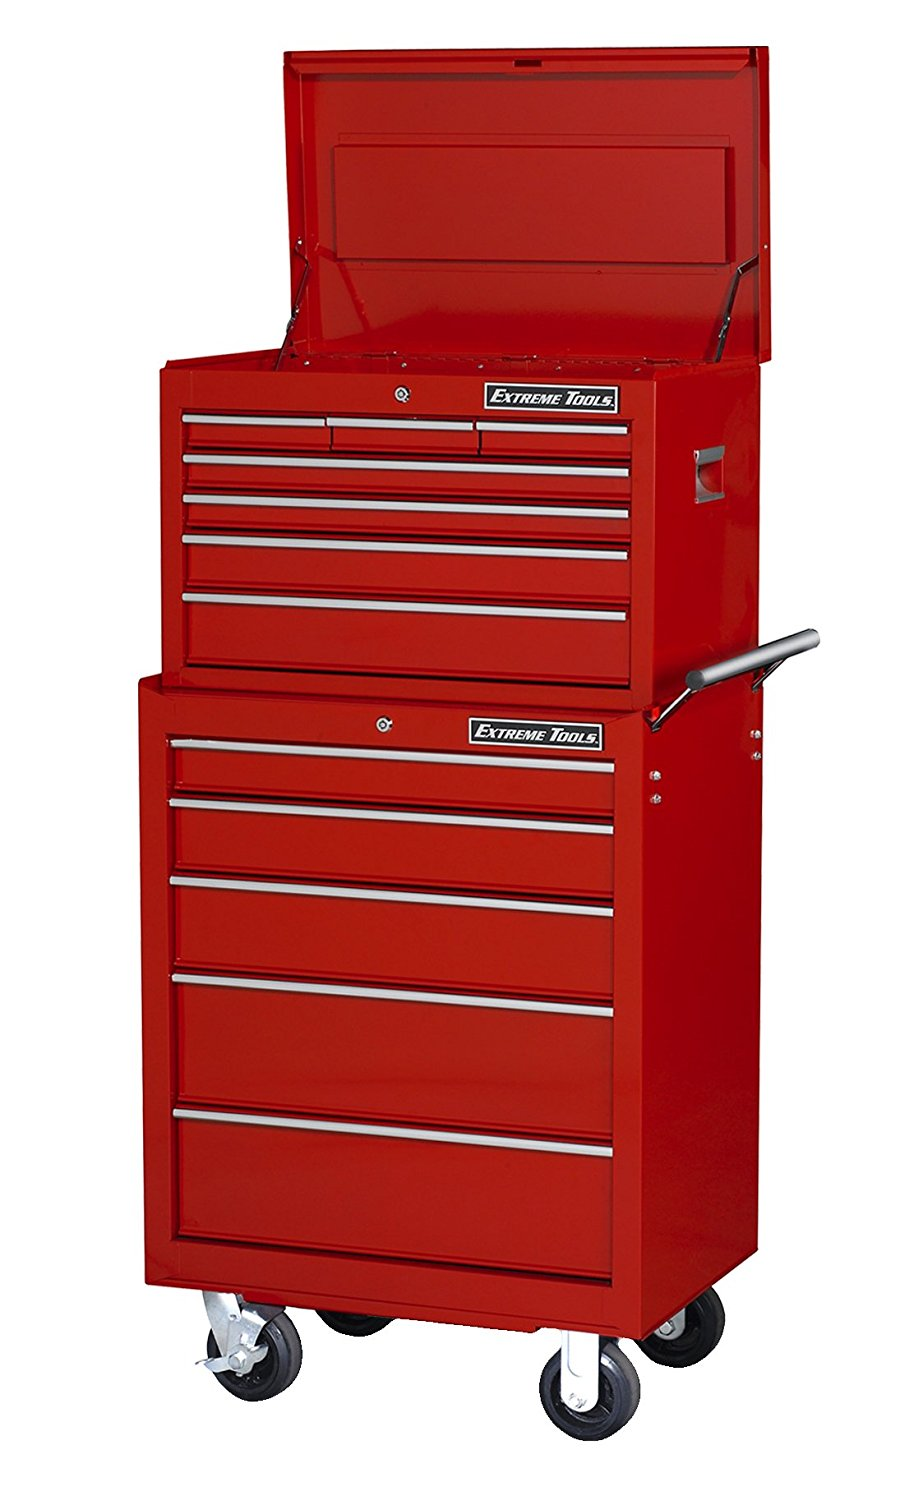 Extreme Tools 26ʺ 7 Drawer Top Chest And 5 Drawer Roller